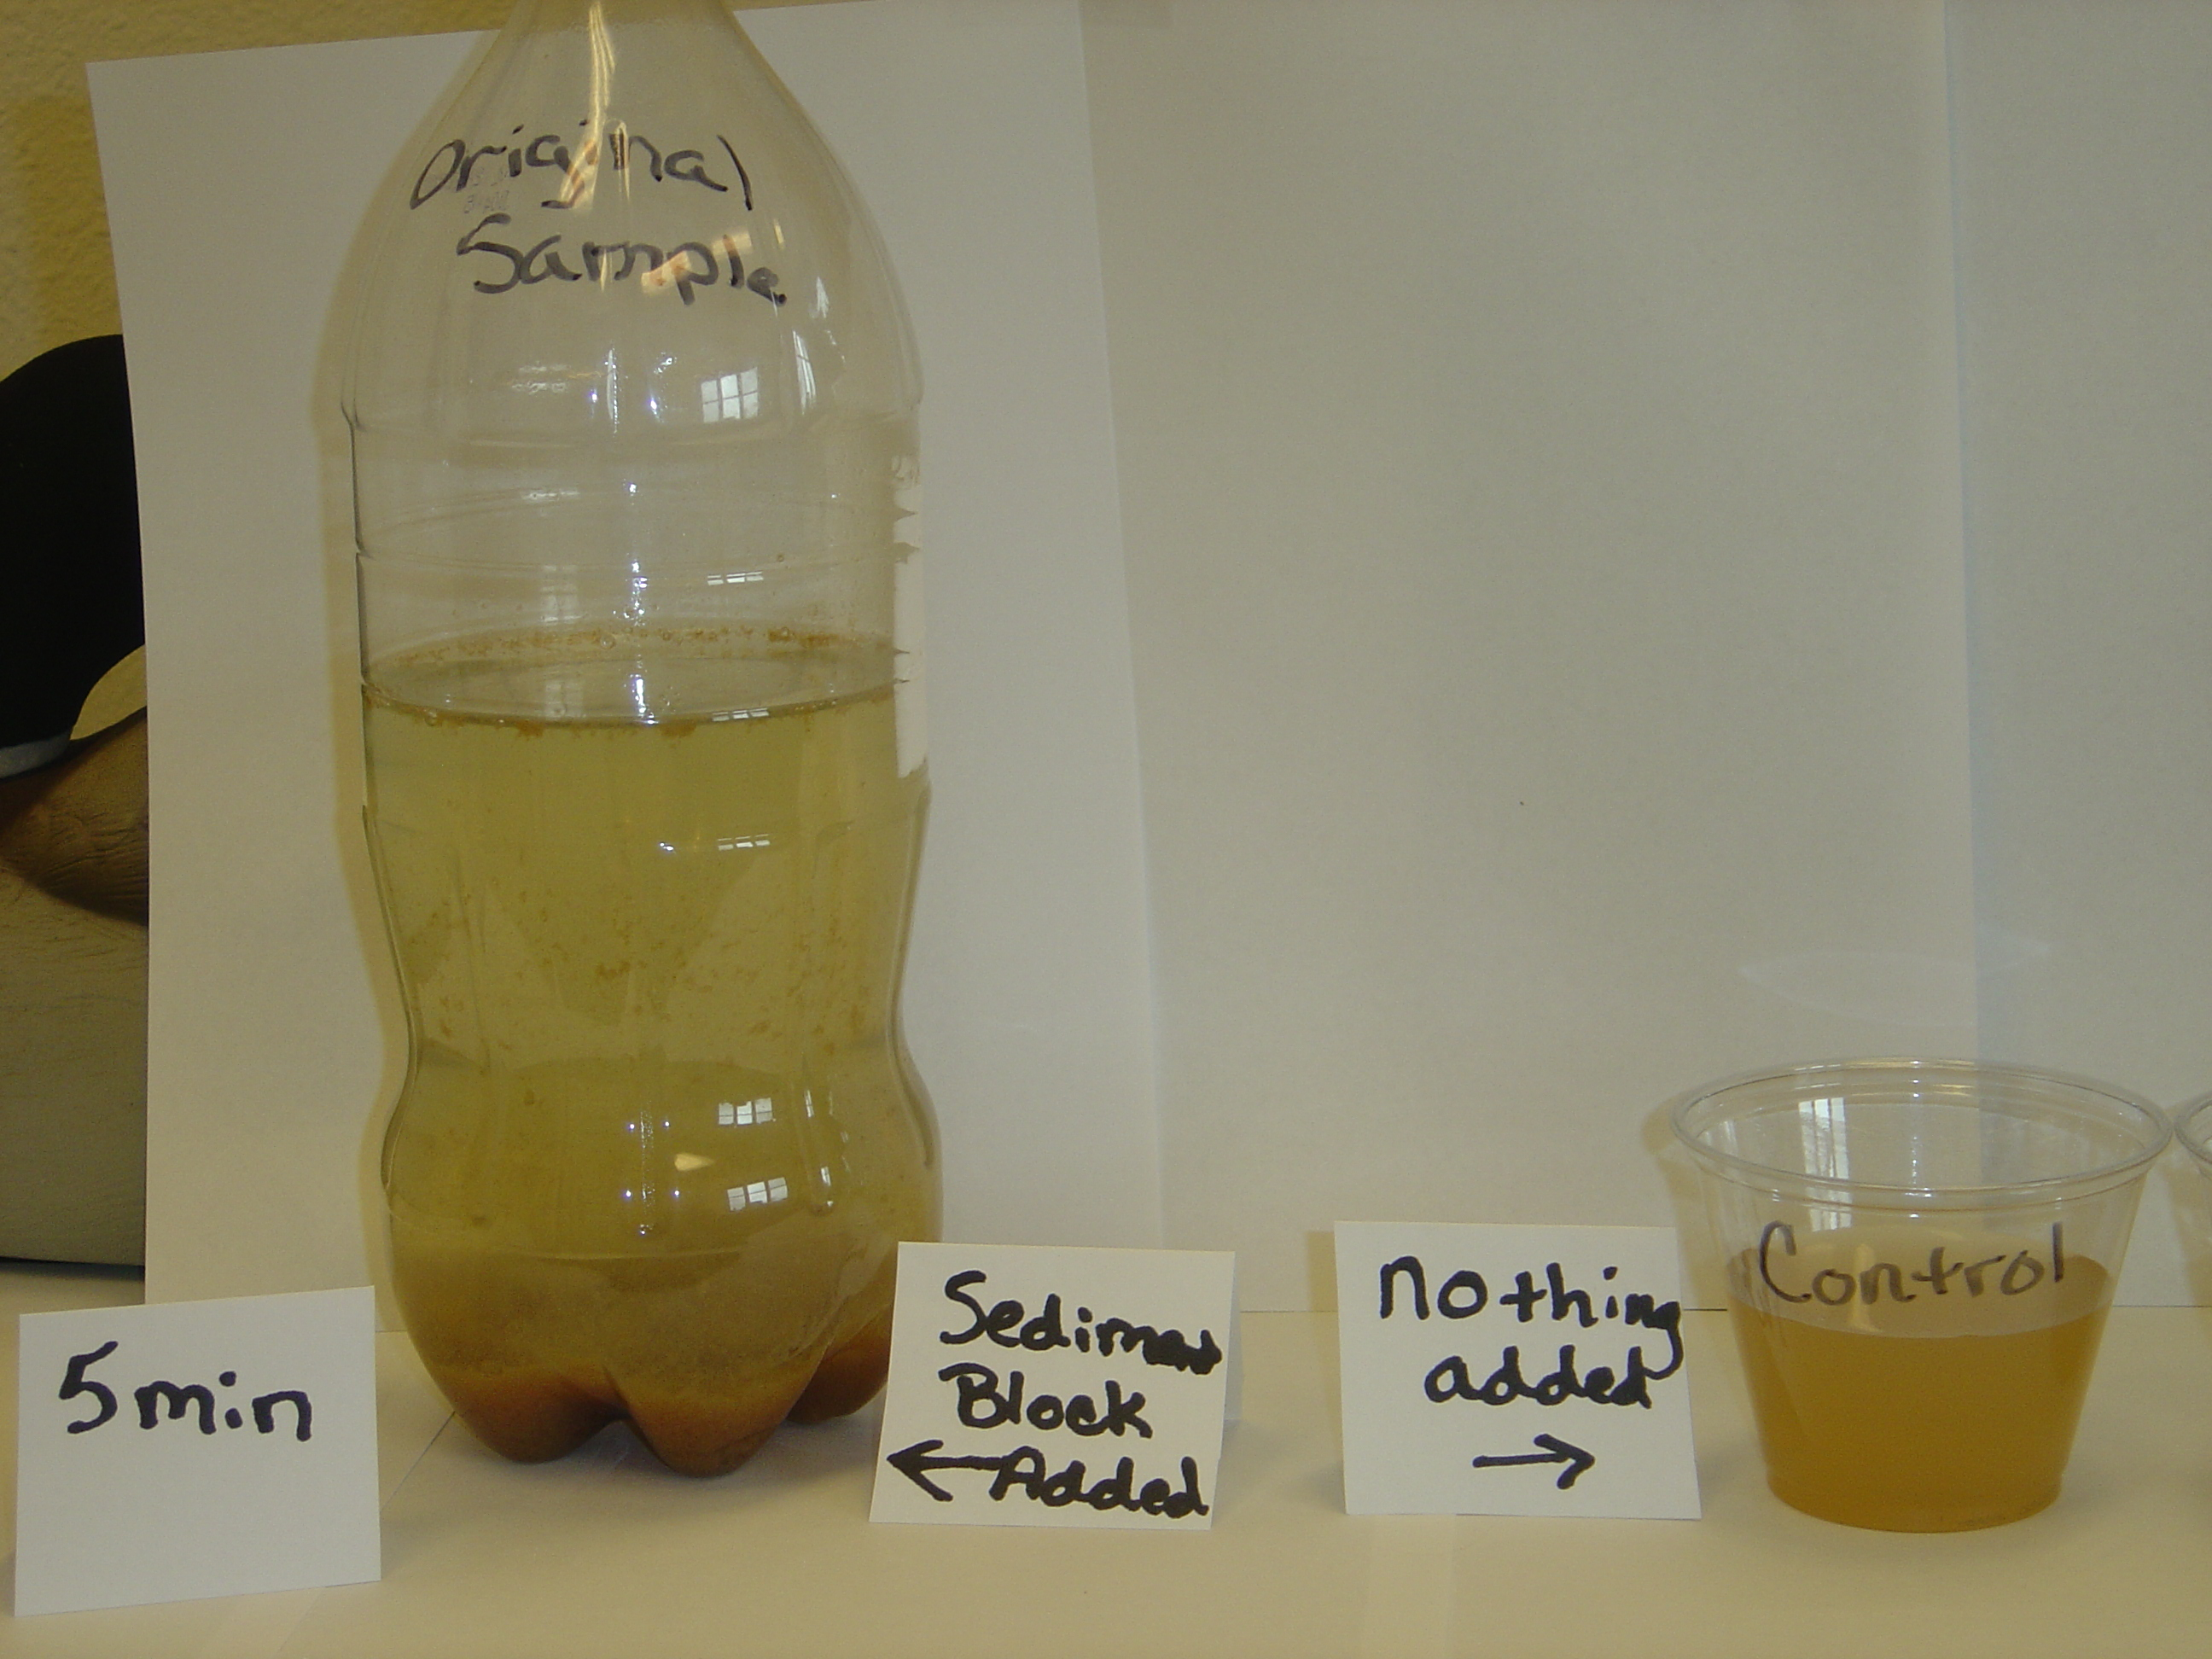 cd-94-k-sediment-block-testing-.jpg